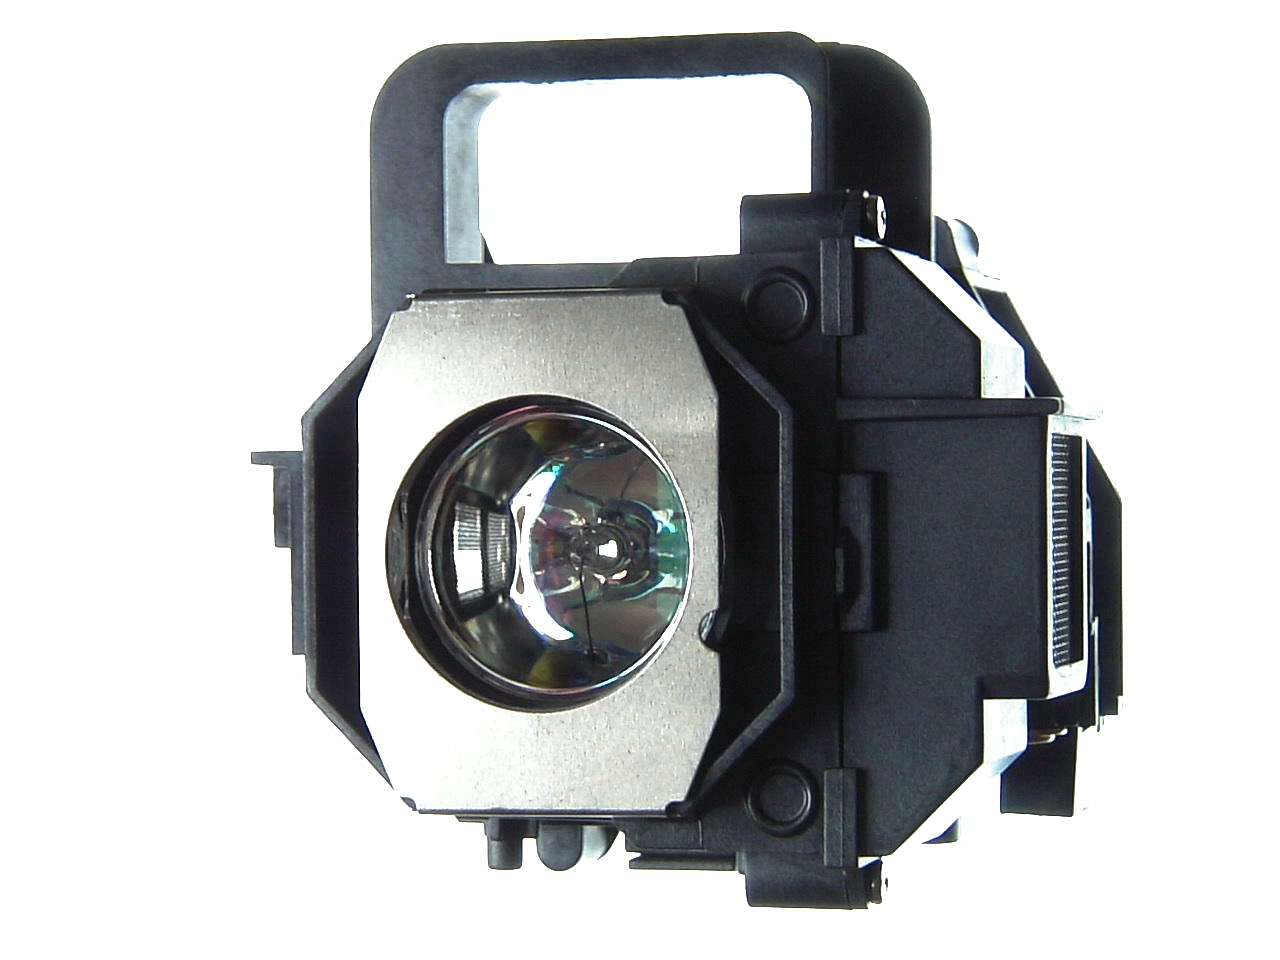 EPSON EPSON PowerLite HC 8345 Diamond Projector Lamp